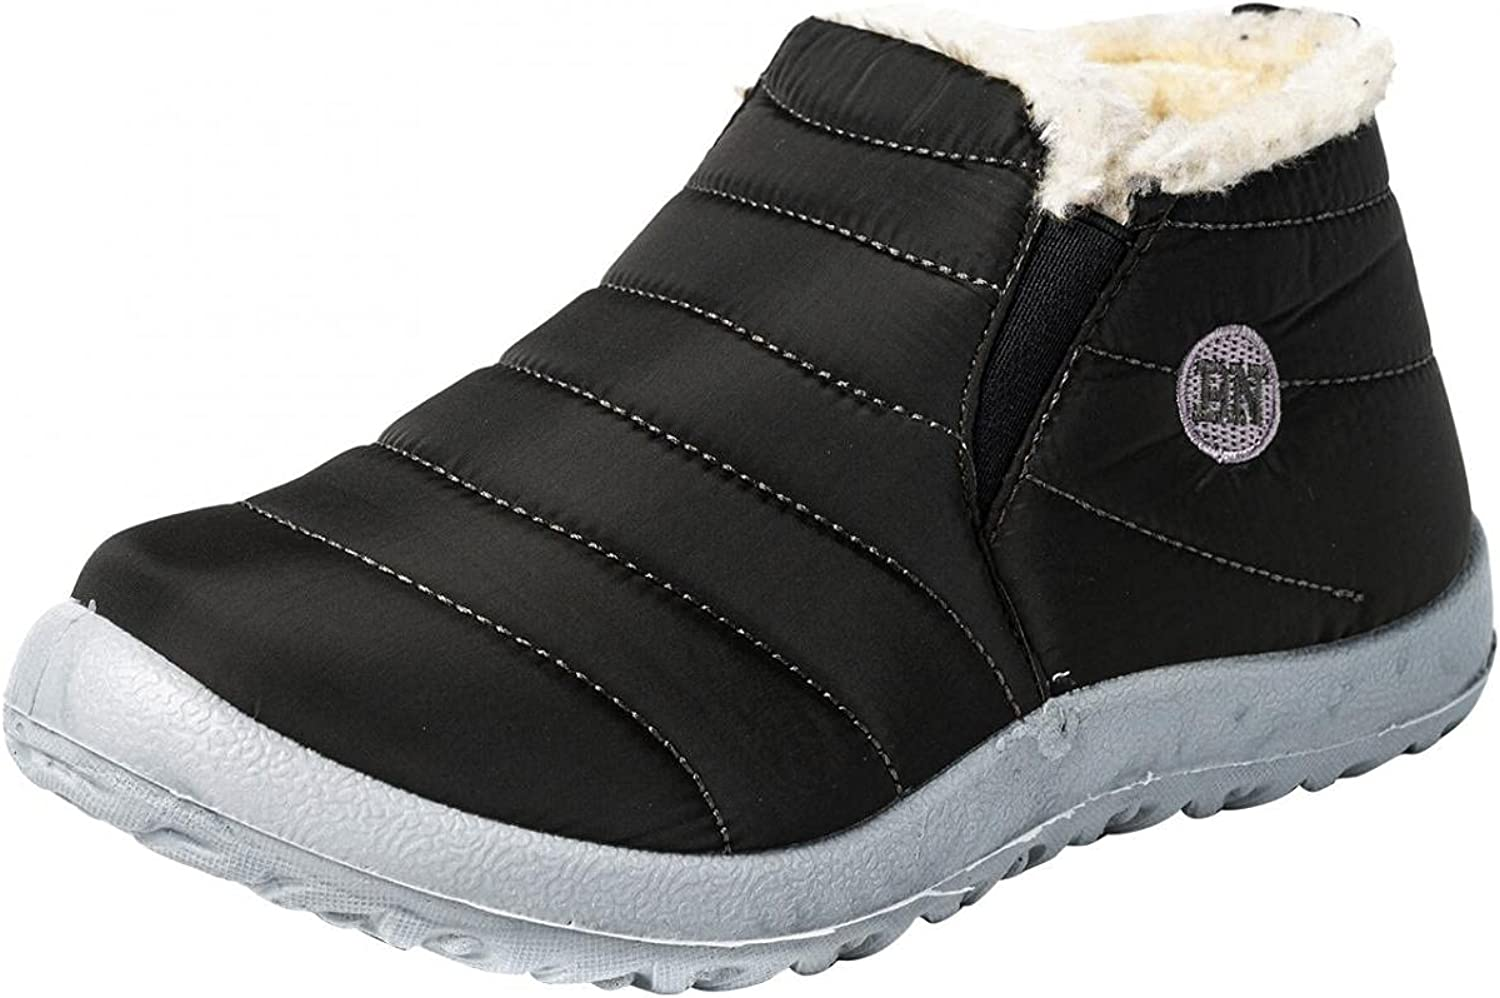 Aunimeifly Men's Snow Boots Winter Max 45% OFF Manufacturer direct delivery Ankle Booties Lined Fur Warm